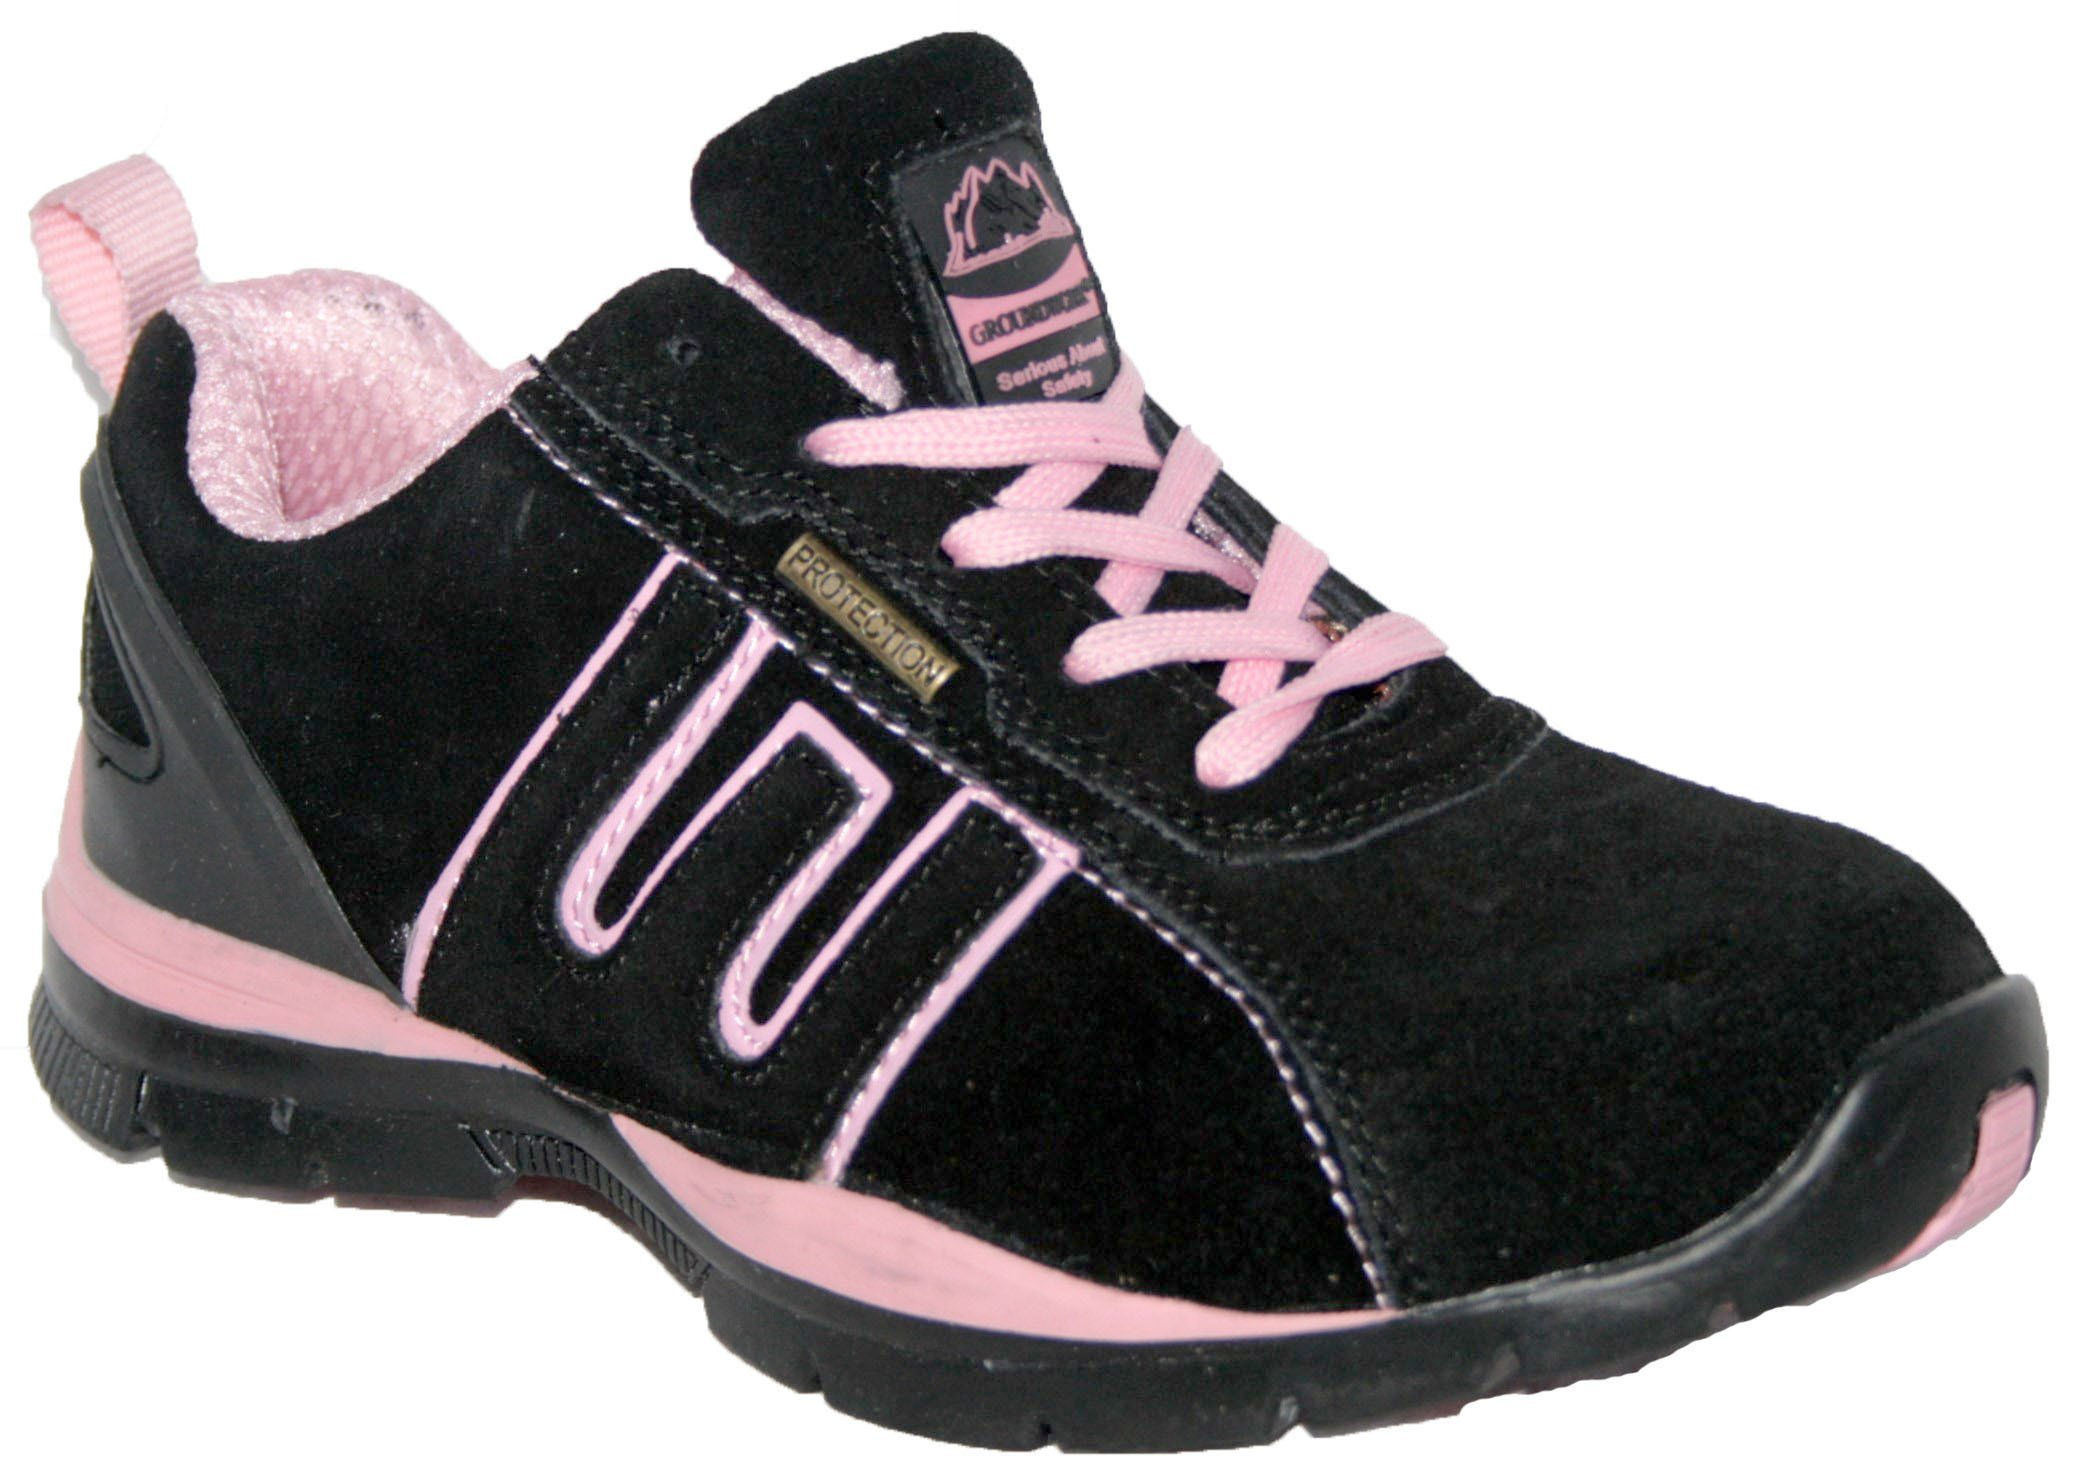 LADIES LIGHTWEIGHT LEATHER UPPERS